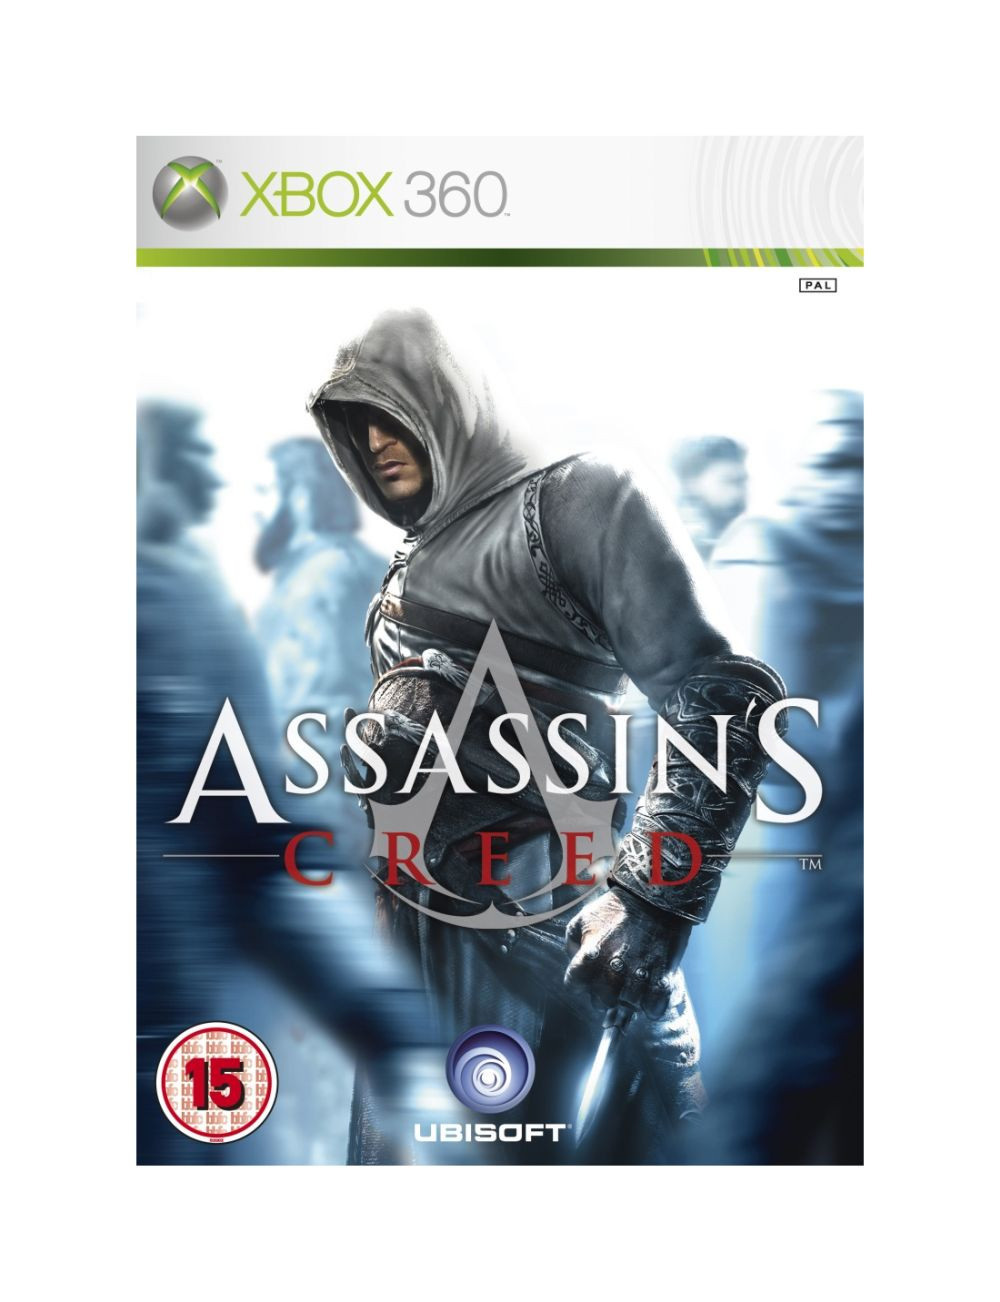 XBOX 360 Assassins Creed